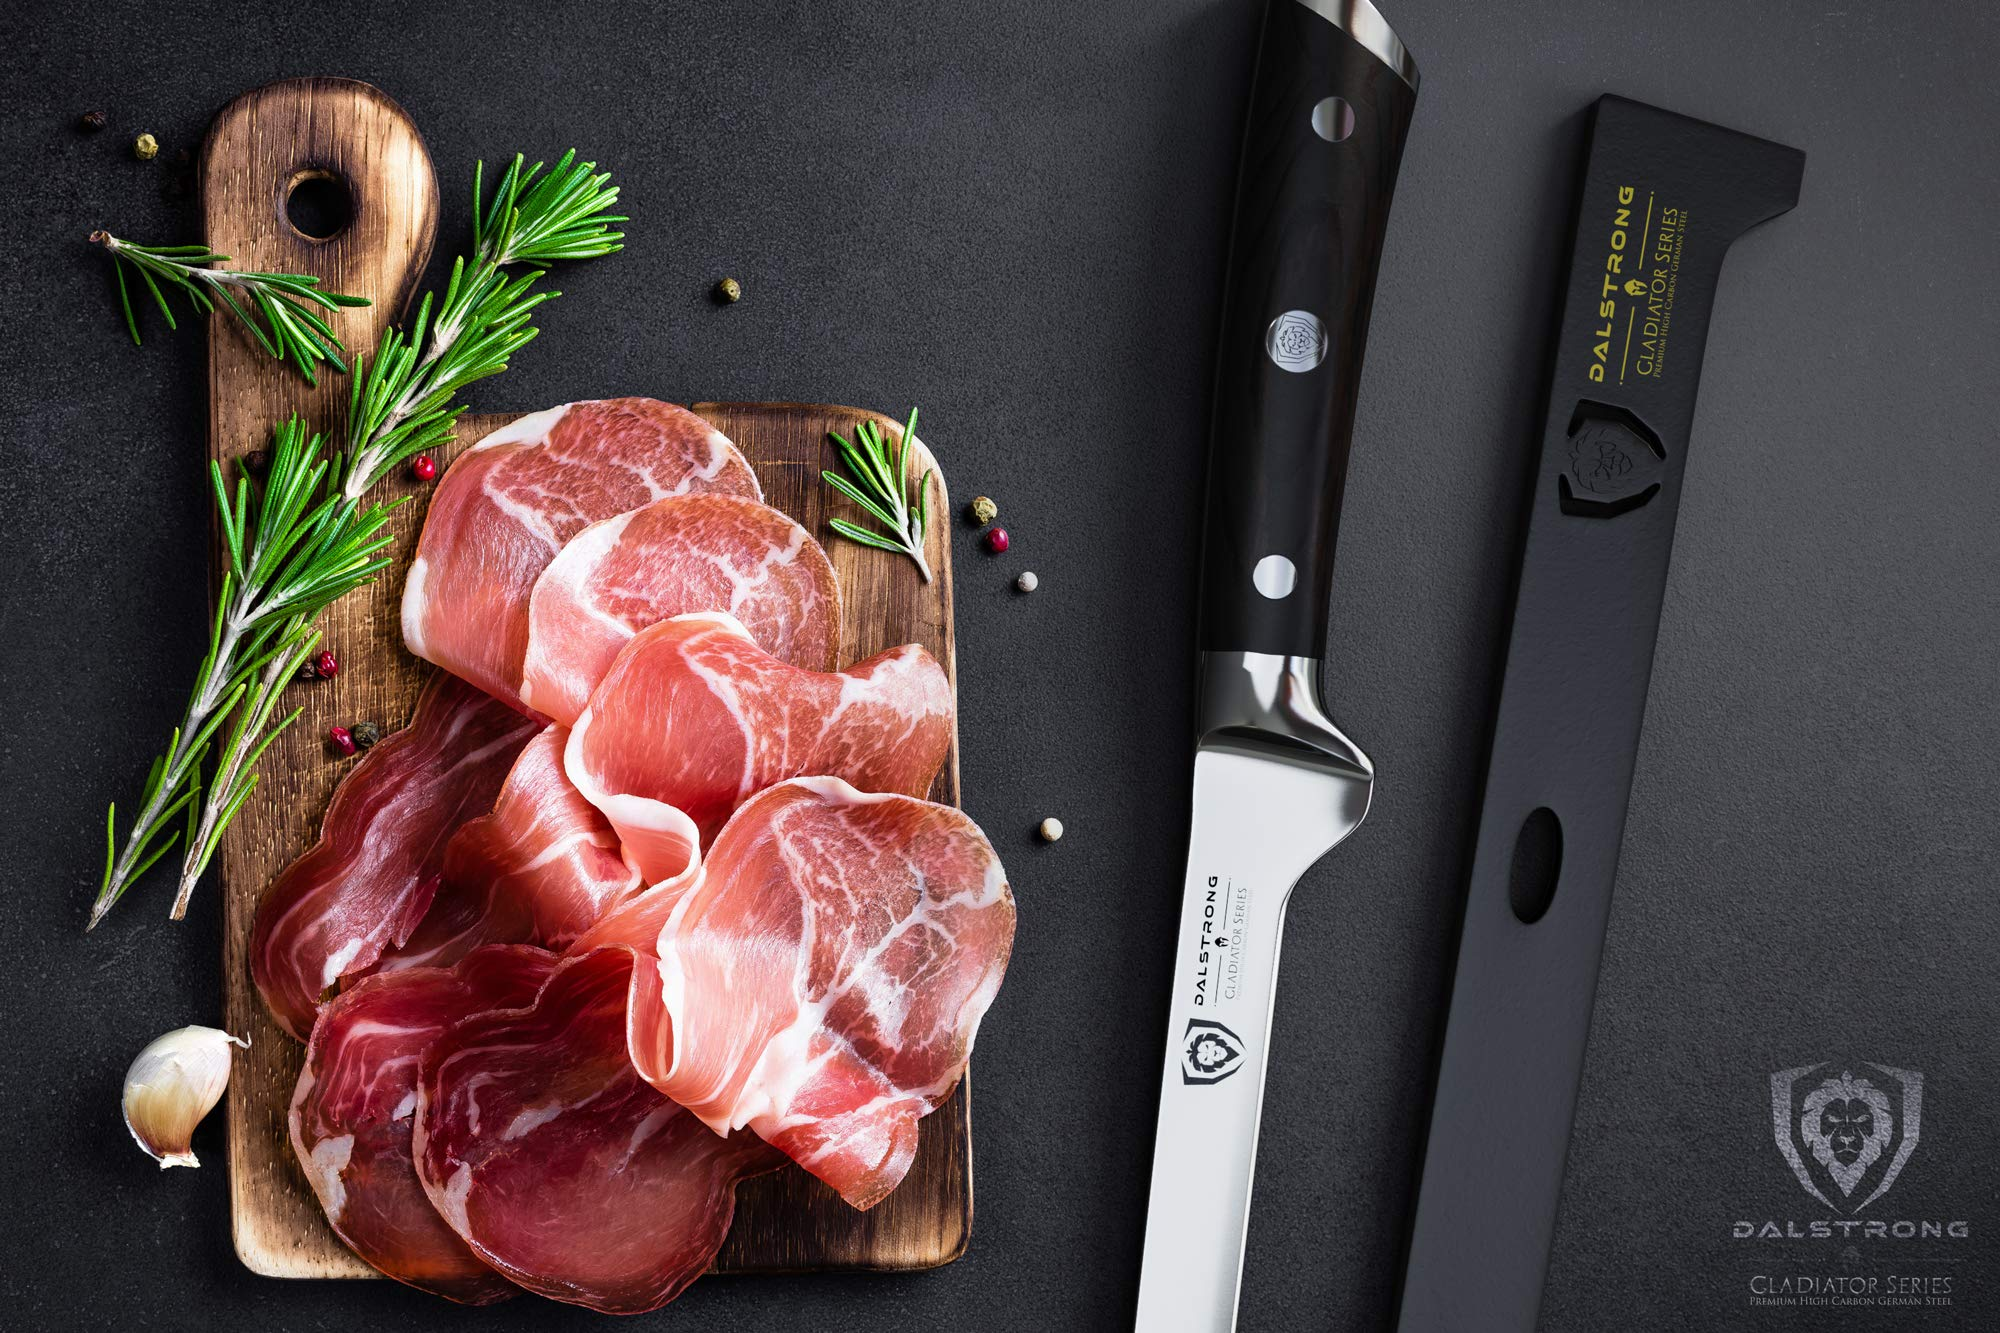 DALSTRONG - Spanish Style Meat & Ham Slicer - Gladiator Series - German HC Steel - 12'' w/Sheath by Dalstrong (Image #5)